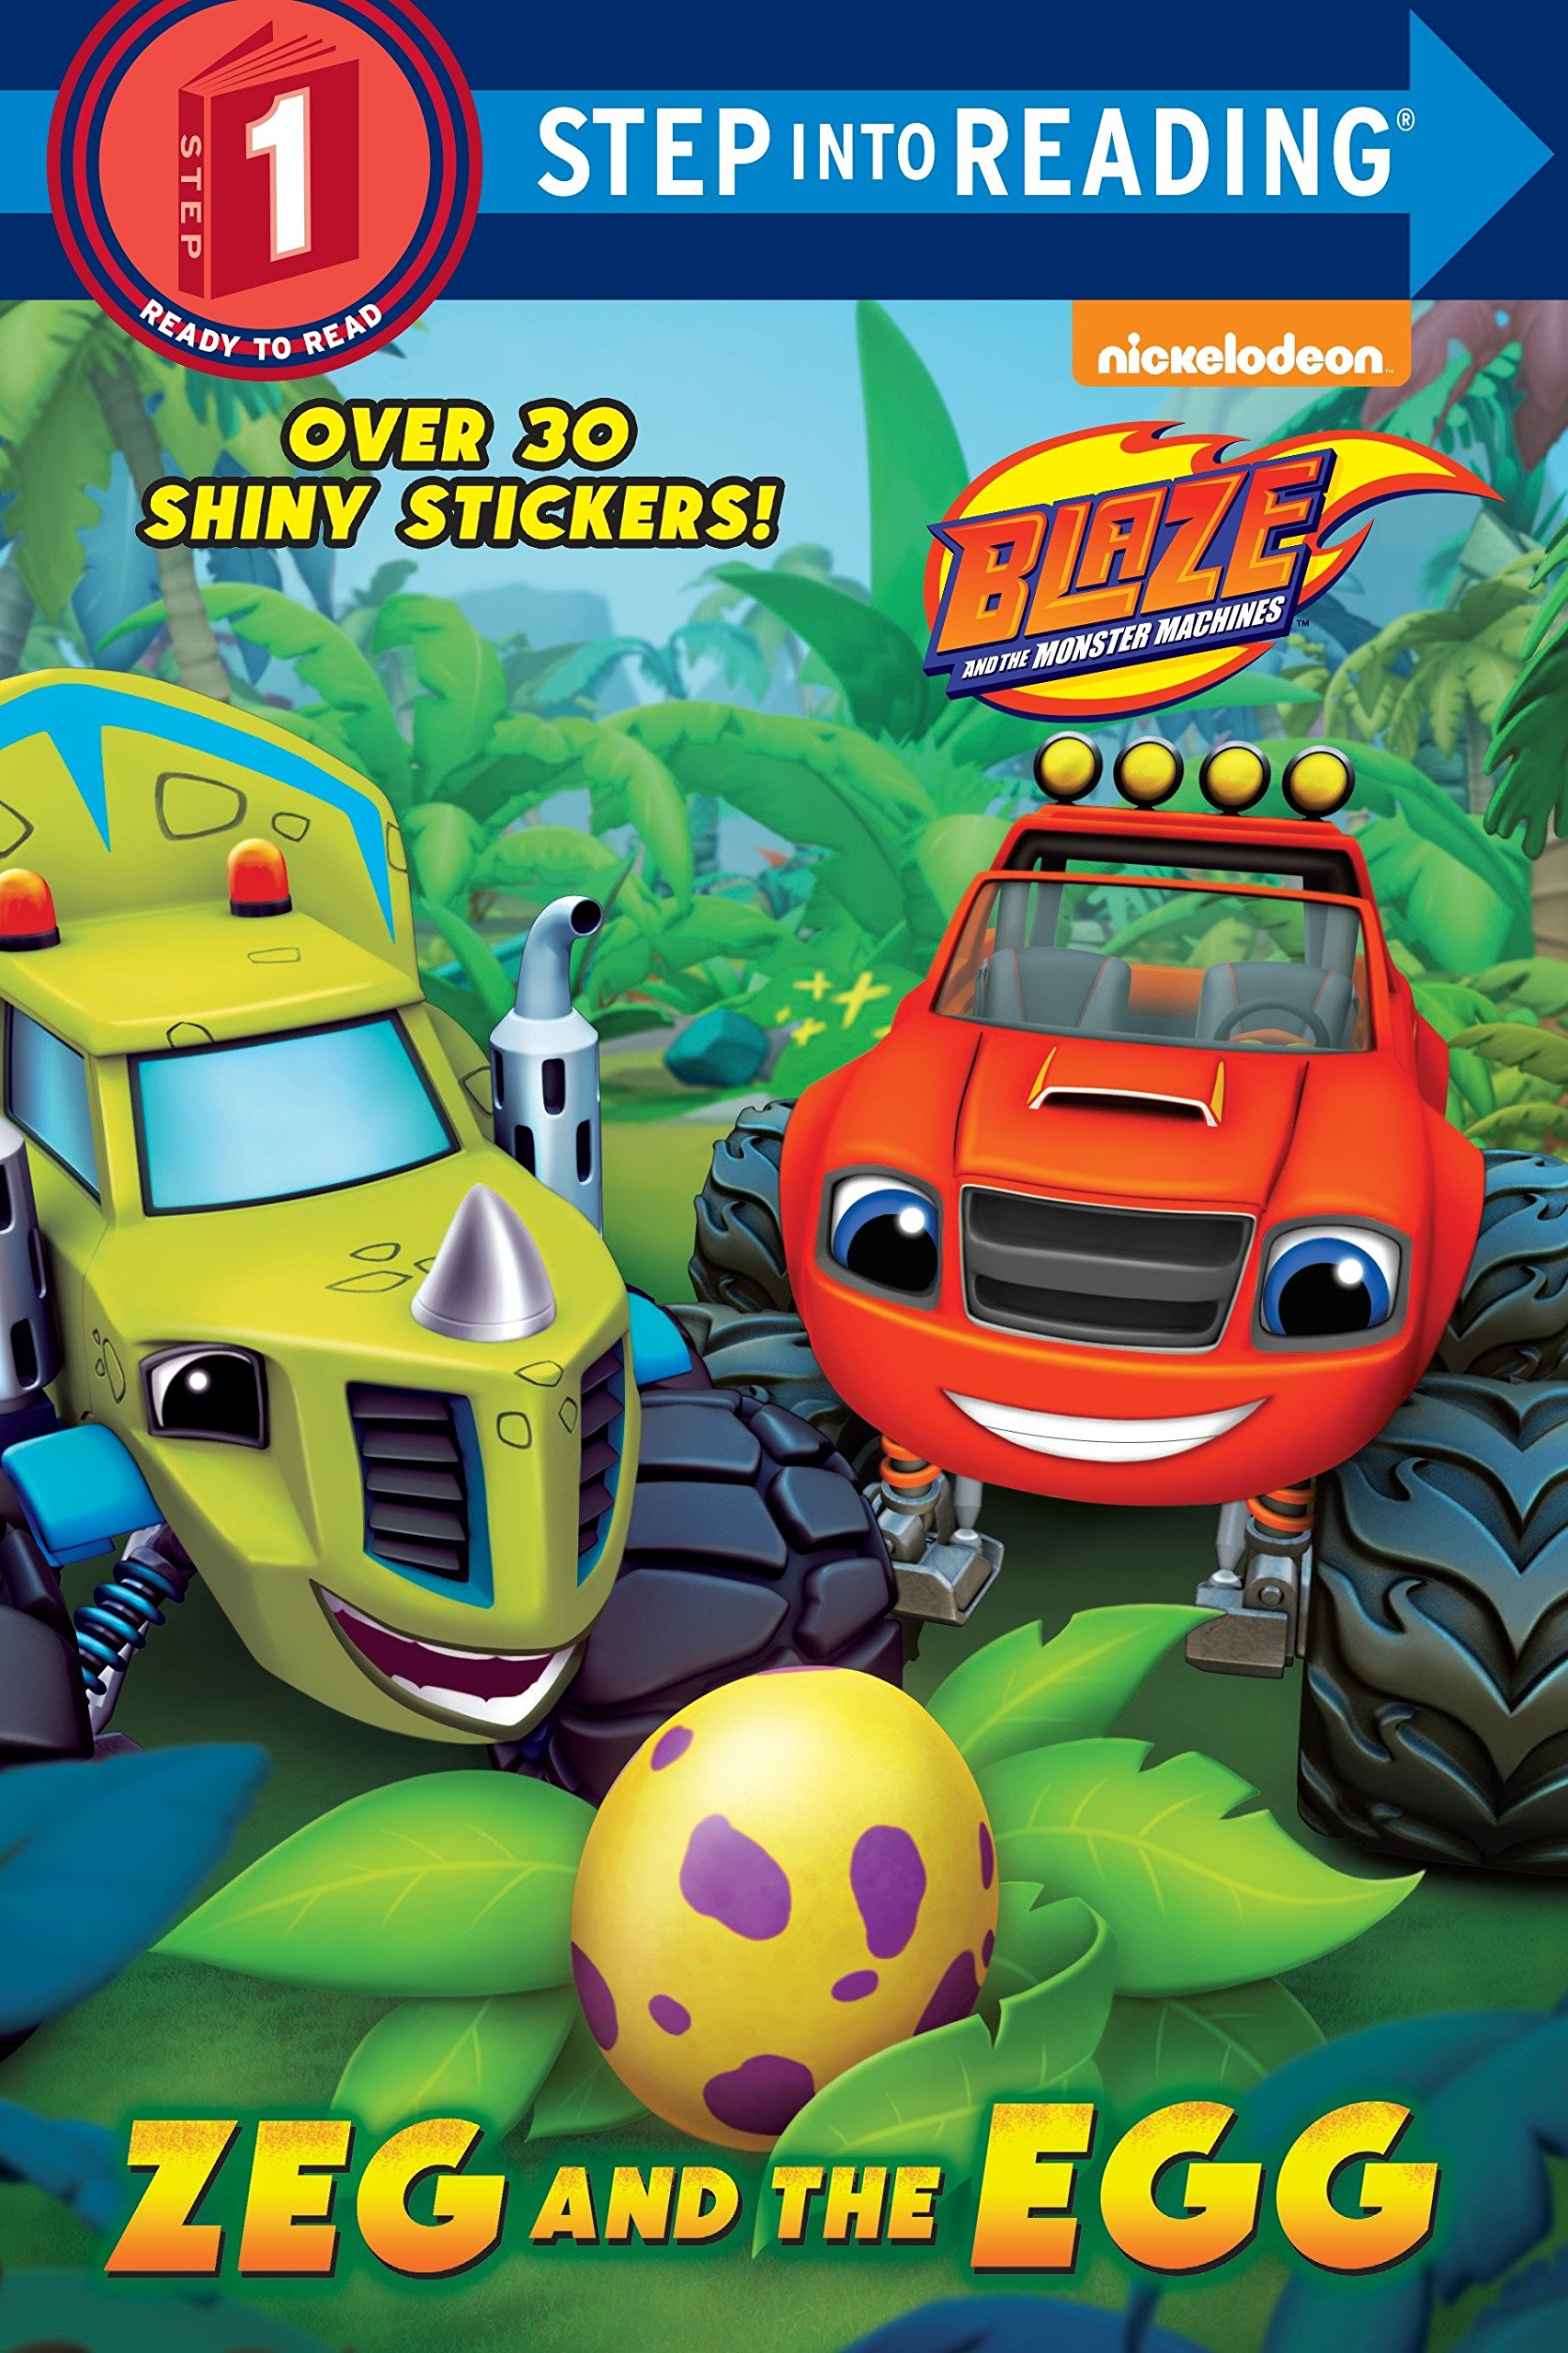 Zeg and the Egg (Blaze and the Monster Machines) (Step into Reading) pdf epub